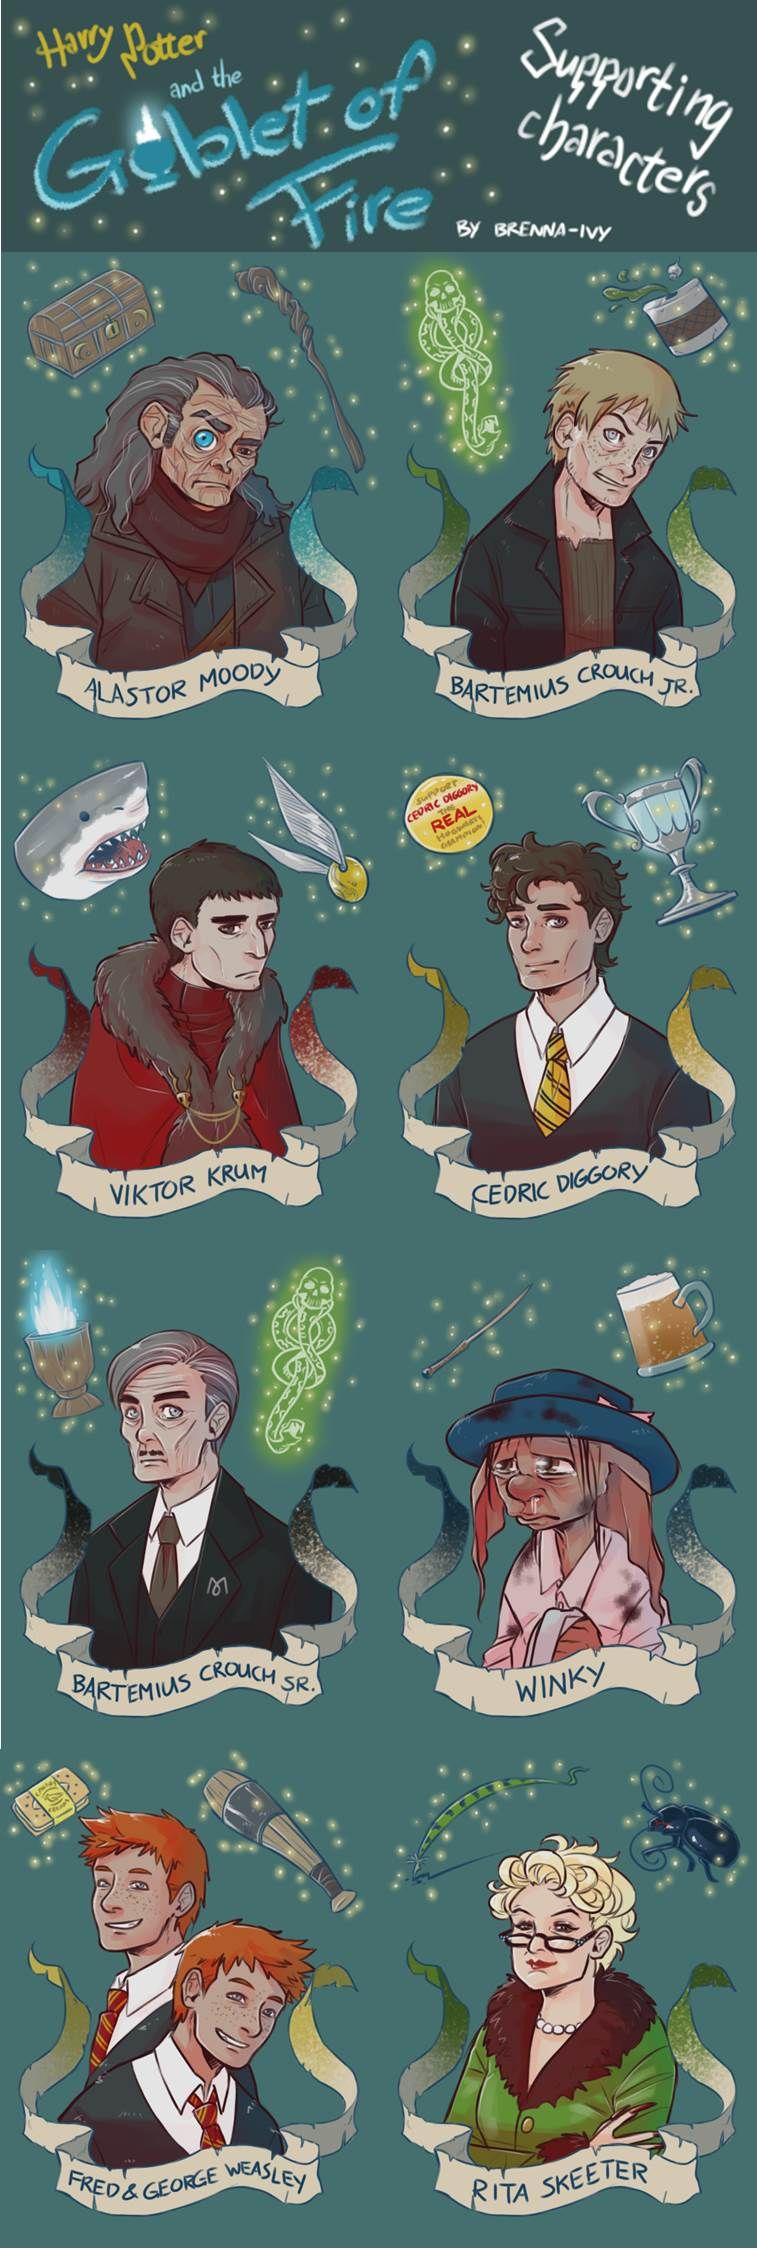 Harry Potter Moody Crouch Jr Krum Cedric Crouch Winky Fred George And Skeeter Harry Potter Illustrations Harry Potter Artwork Harry Potter Drawings